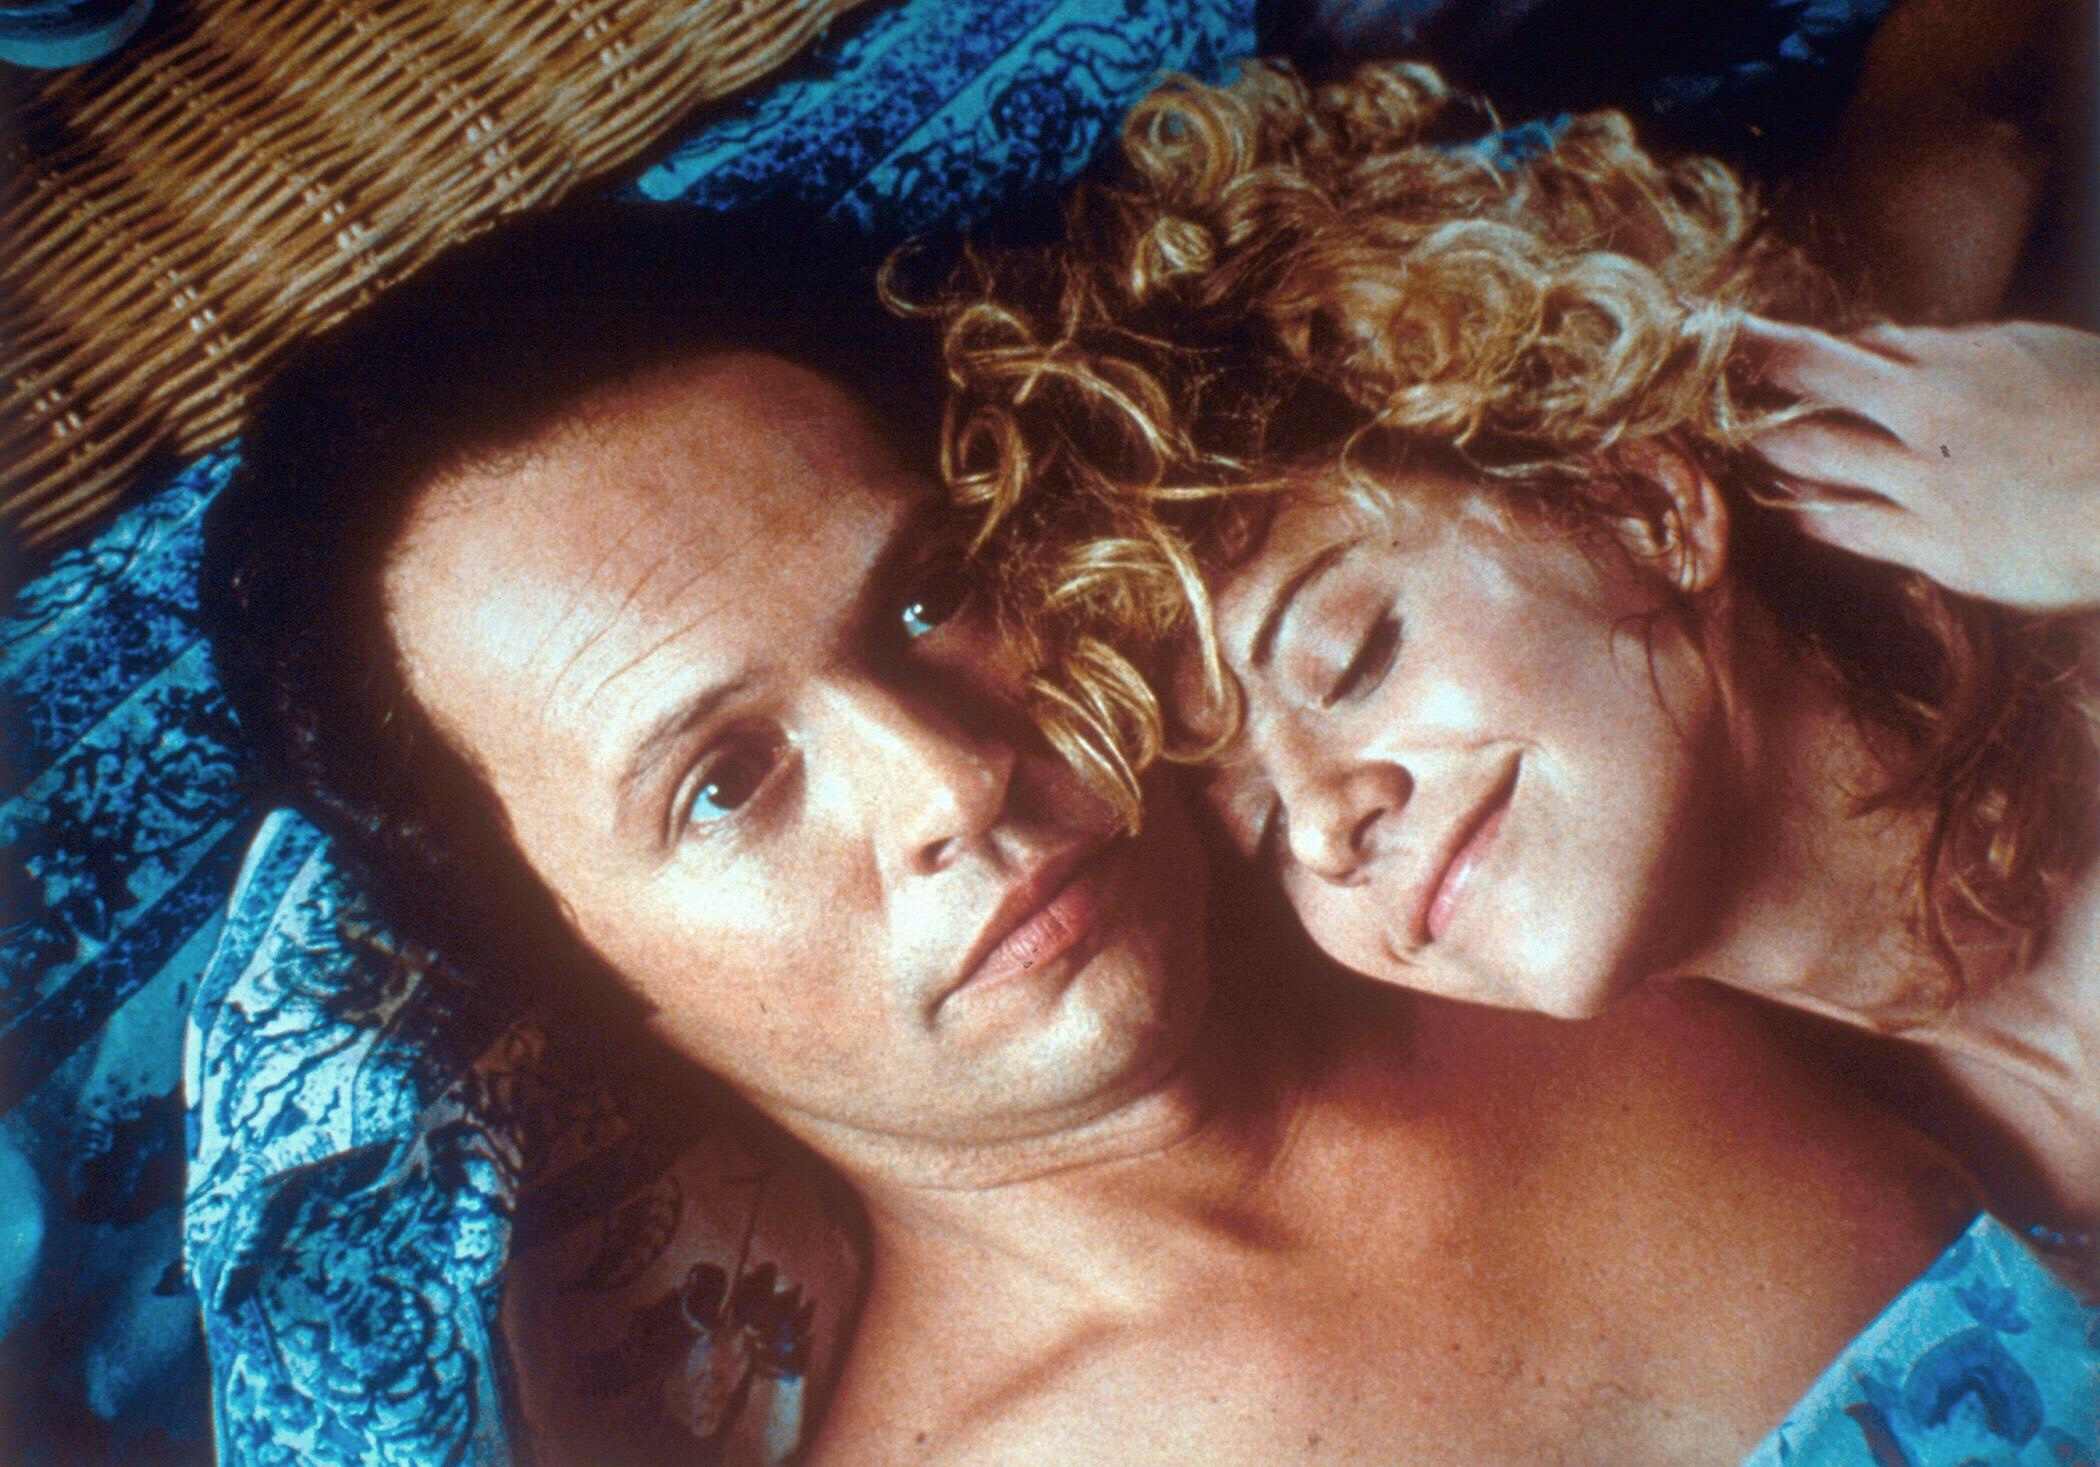 Harry and Sally in bed together. She looks happy, he looks horrified